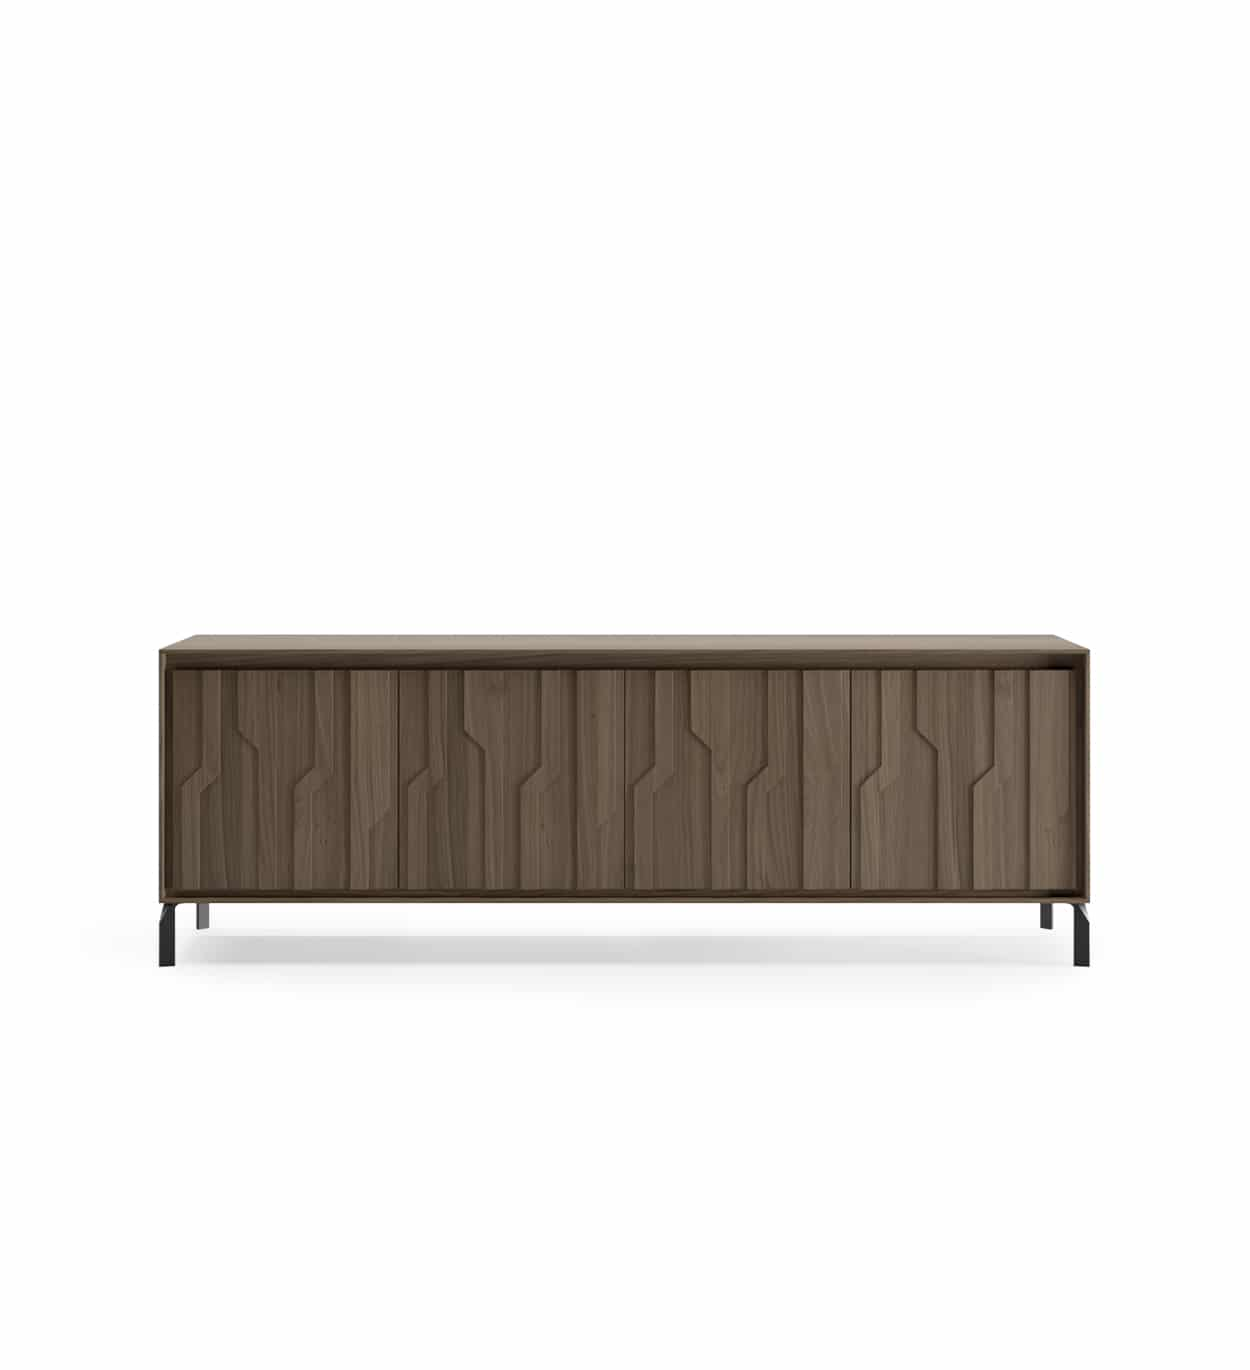 dining-room-sideboards-ginkgo-front